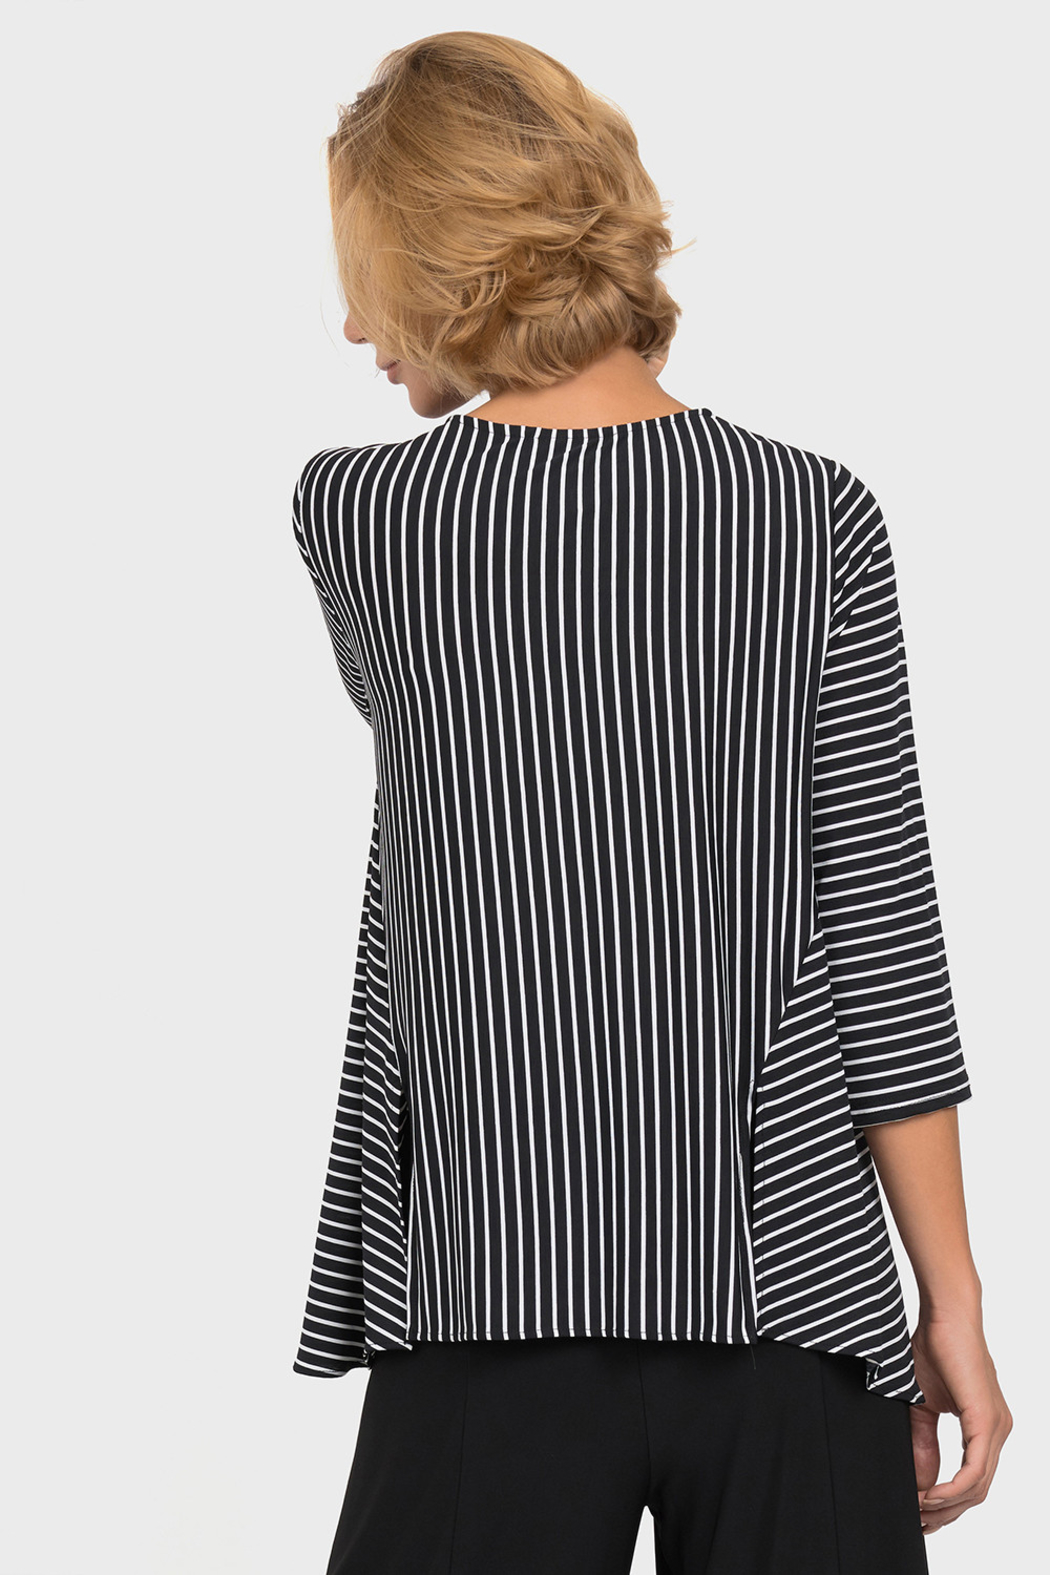 Joseph Ribkoff  Optical Lines Top, Black/White - Side Cropped Image